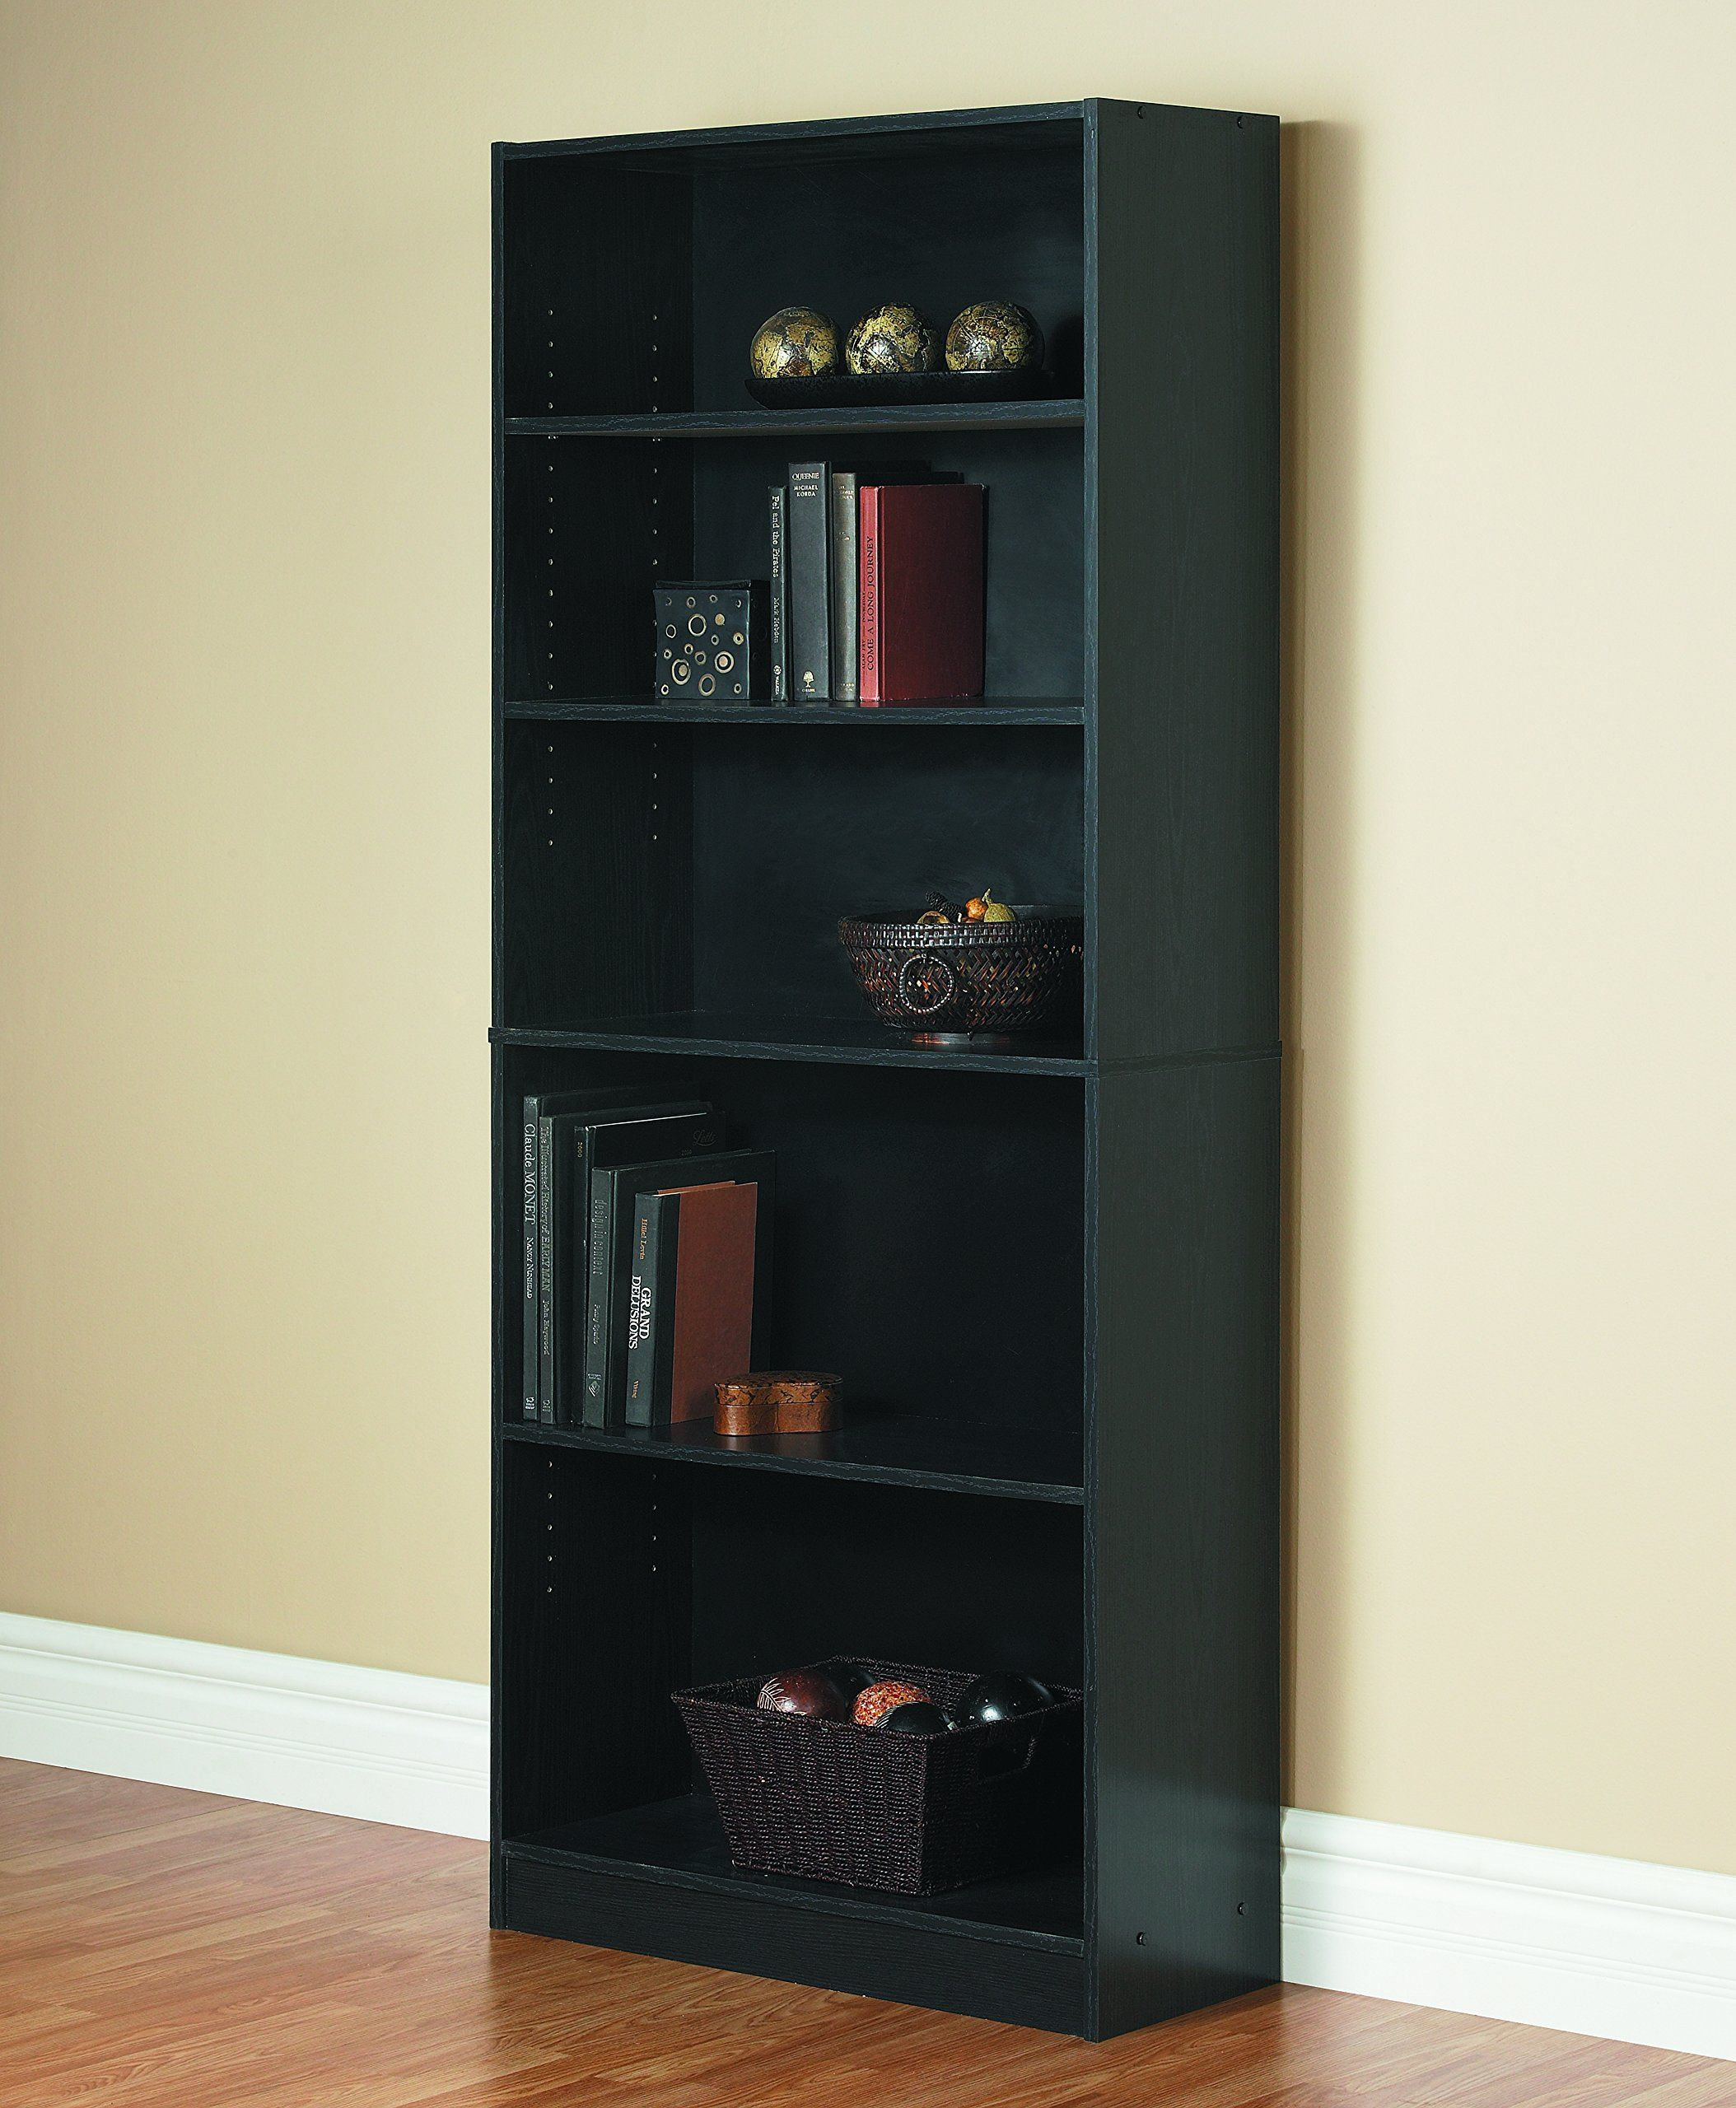 Mylex Five Shelf Bookcase Three Adjustable Shelves 11 63 X 29 63 X 71 5 Inches Black Assembly Required 43074 Shelves Furniture For Small Spaces Bookcase